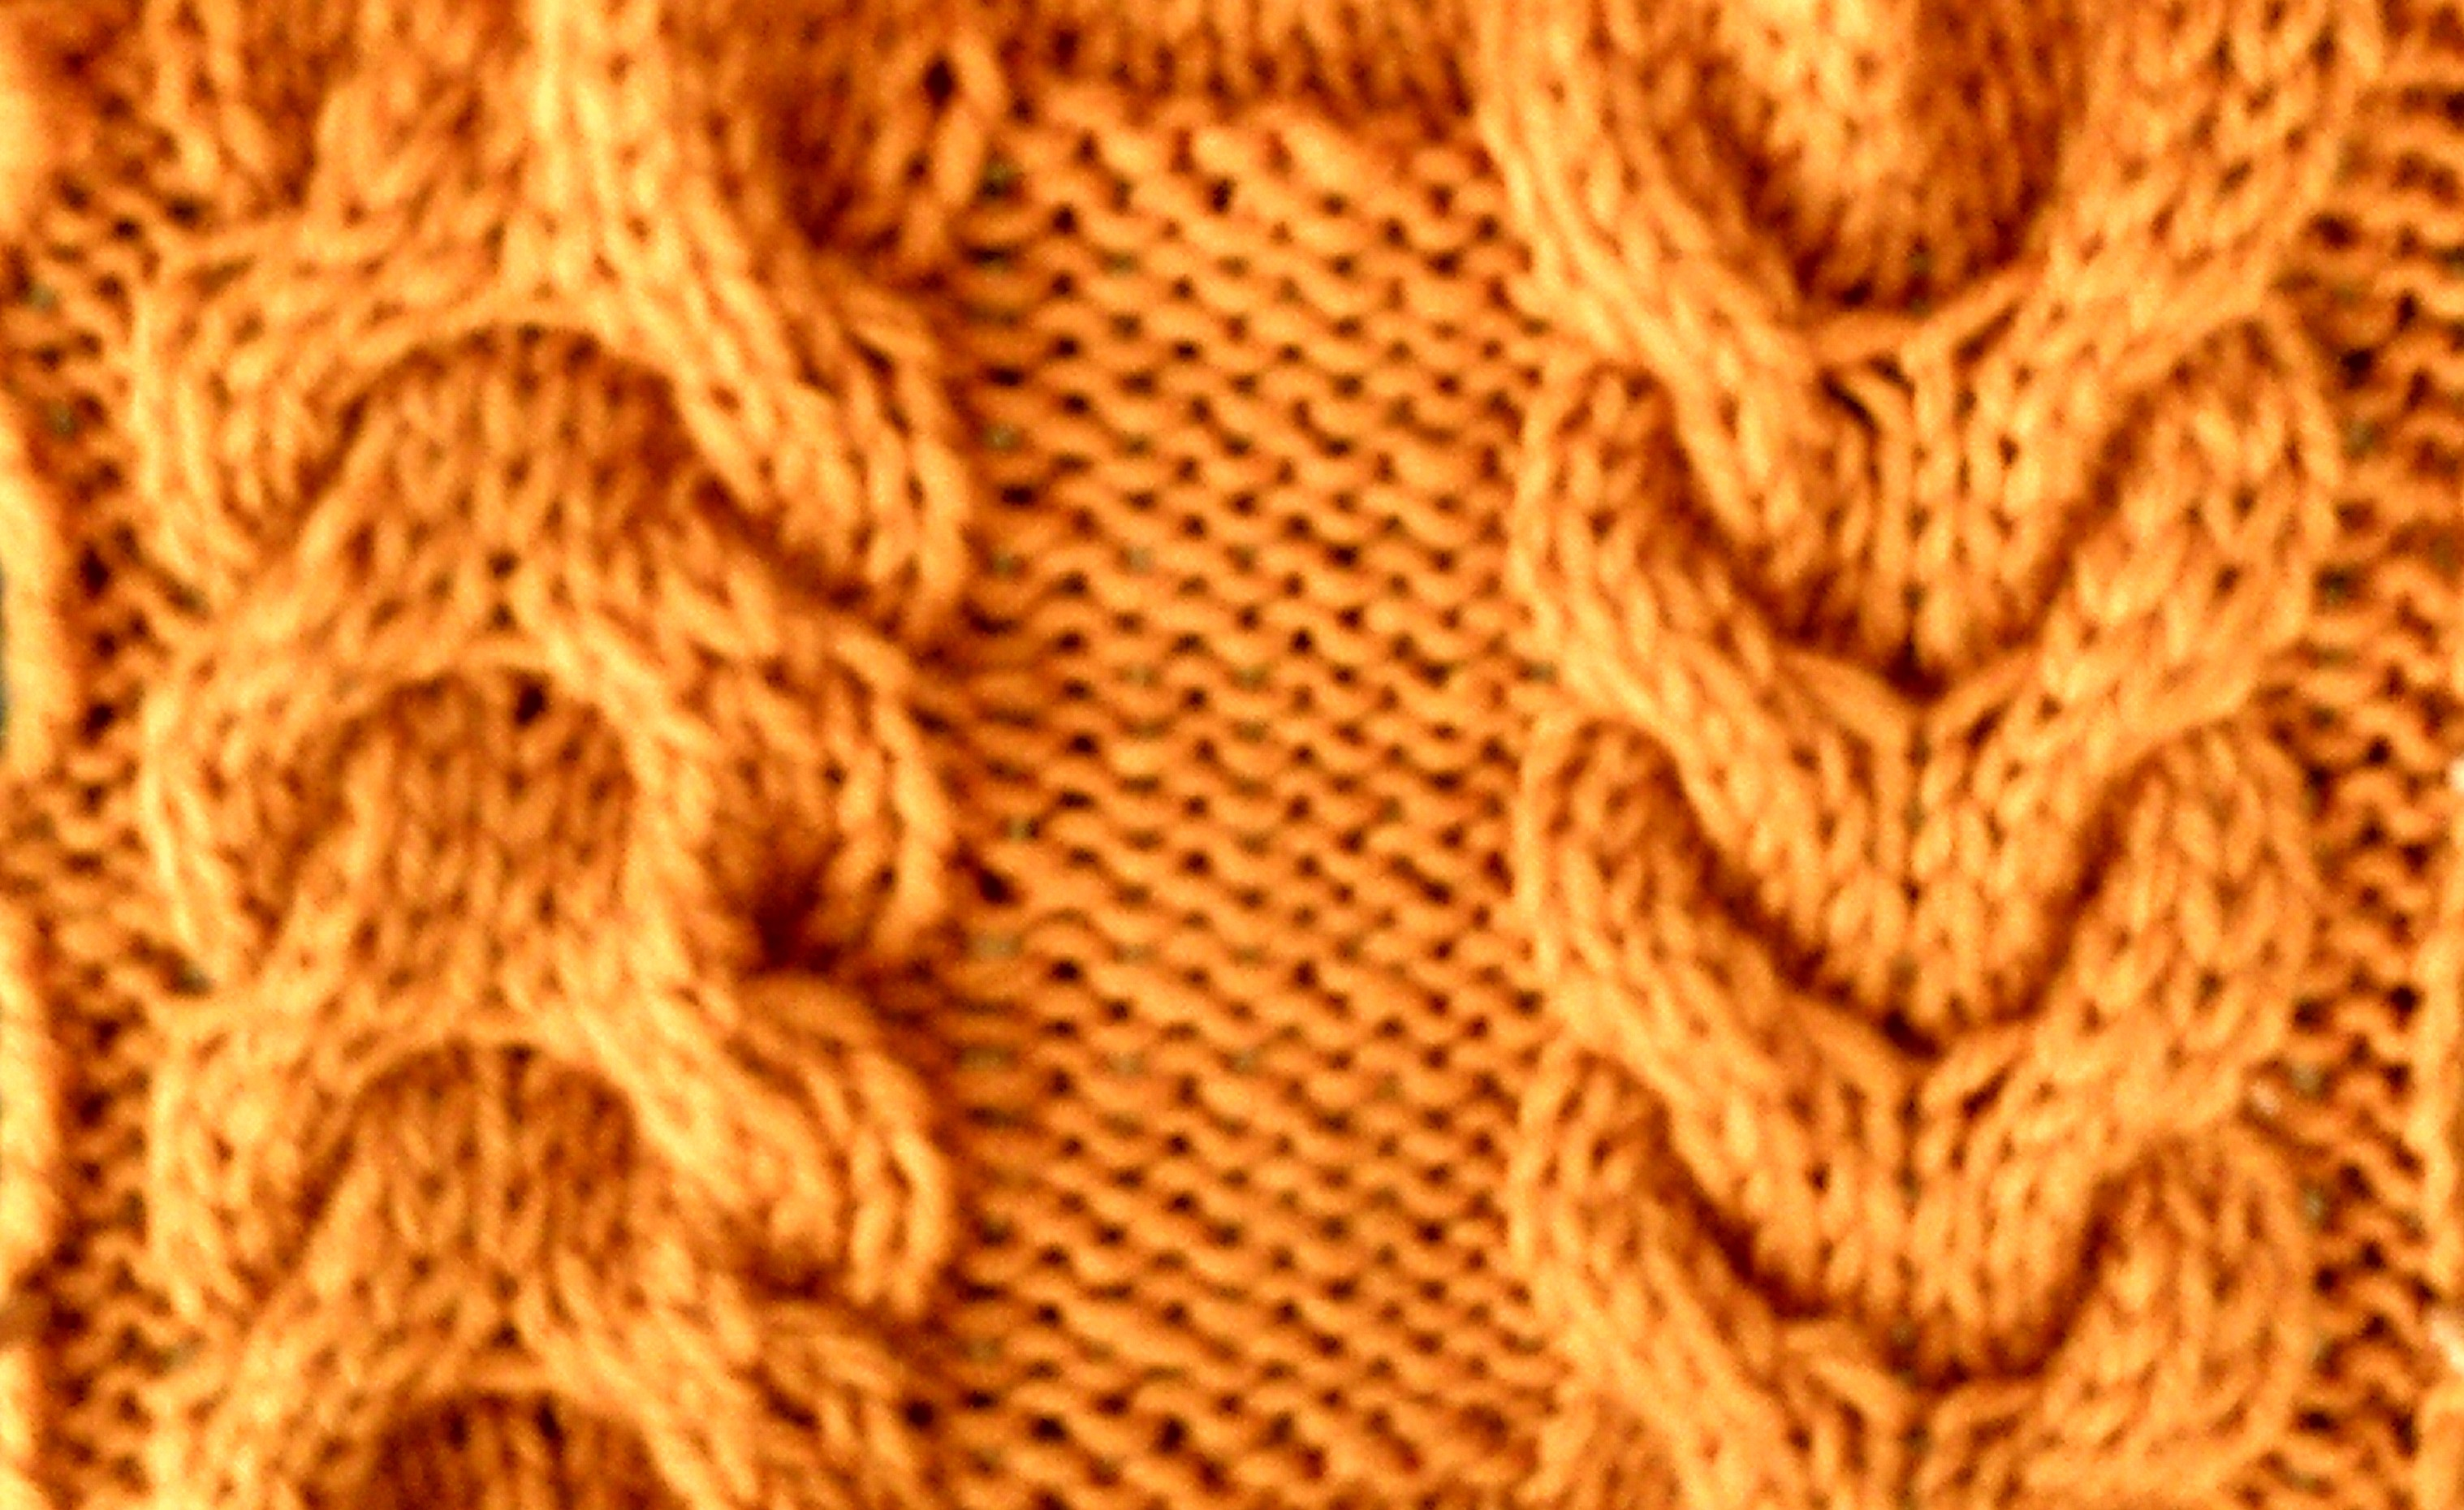 Horseshoe cable knit pattern gorinkfo for cable knitting archives horseshoe cable knit pattern bankloansurffo Image collections